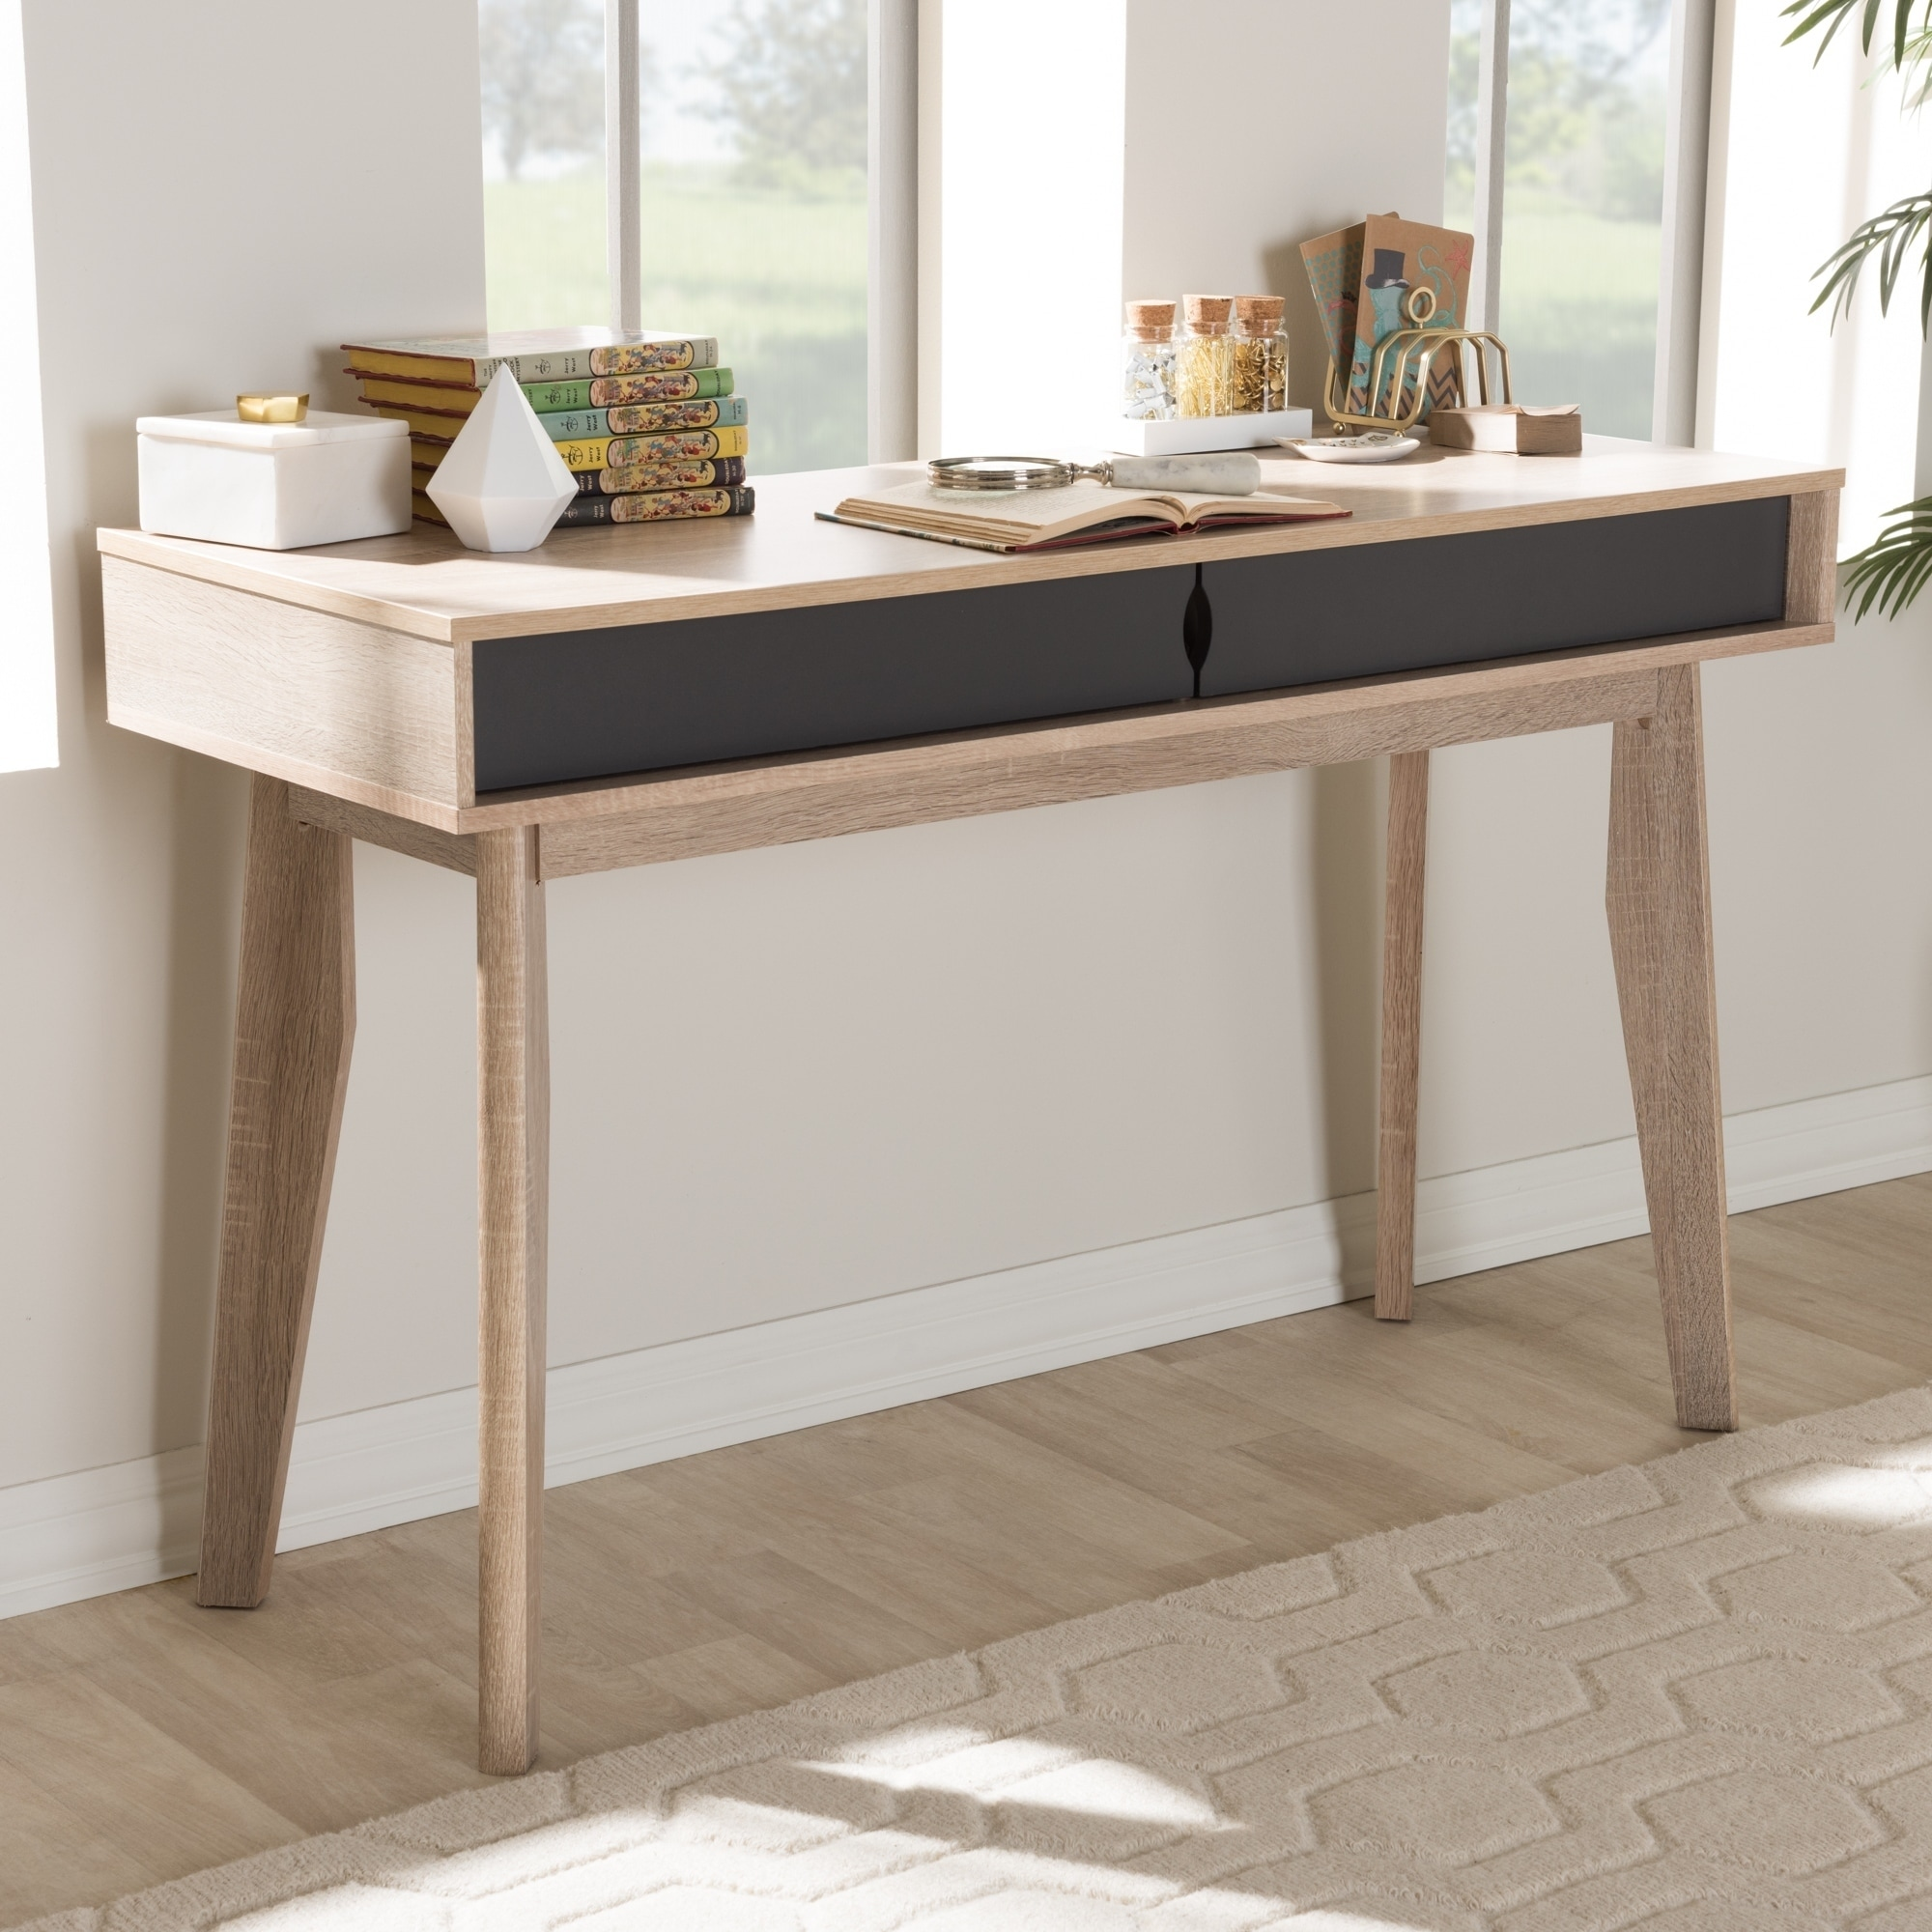 Image of: Shop Black Friday Deals On Mid Century 2 Drawer Oak And Grey Wood Study Desk By Baxton Studio Overstock 16566738